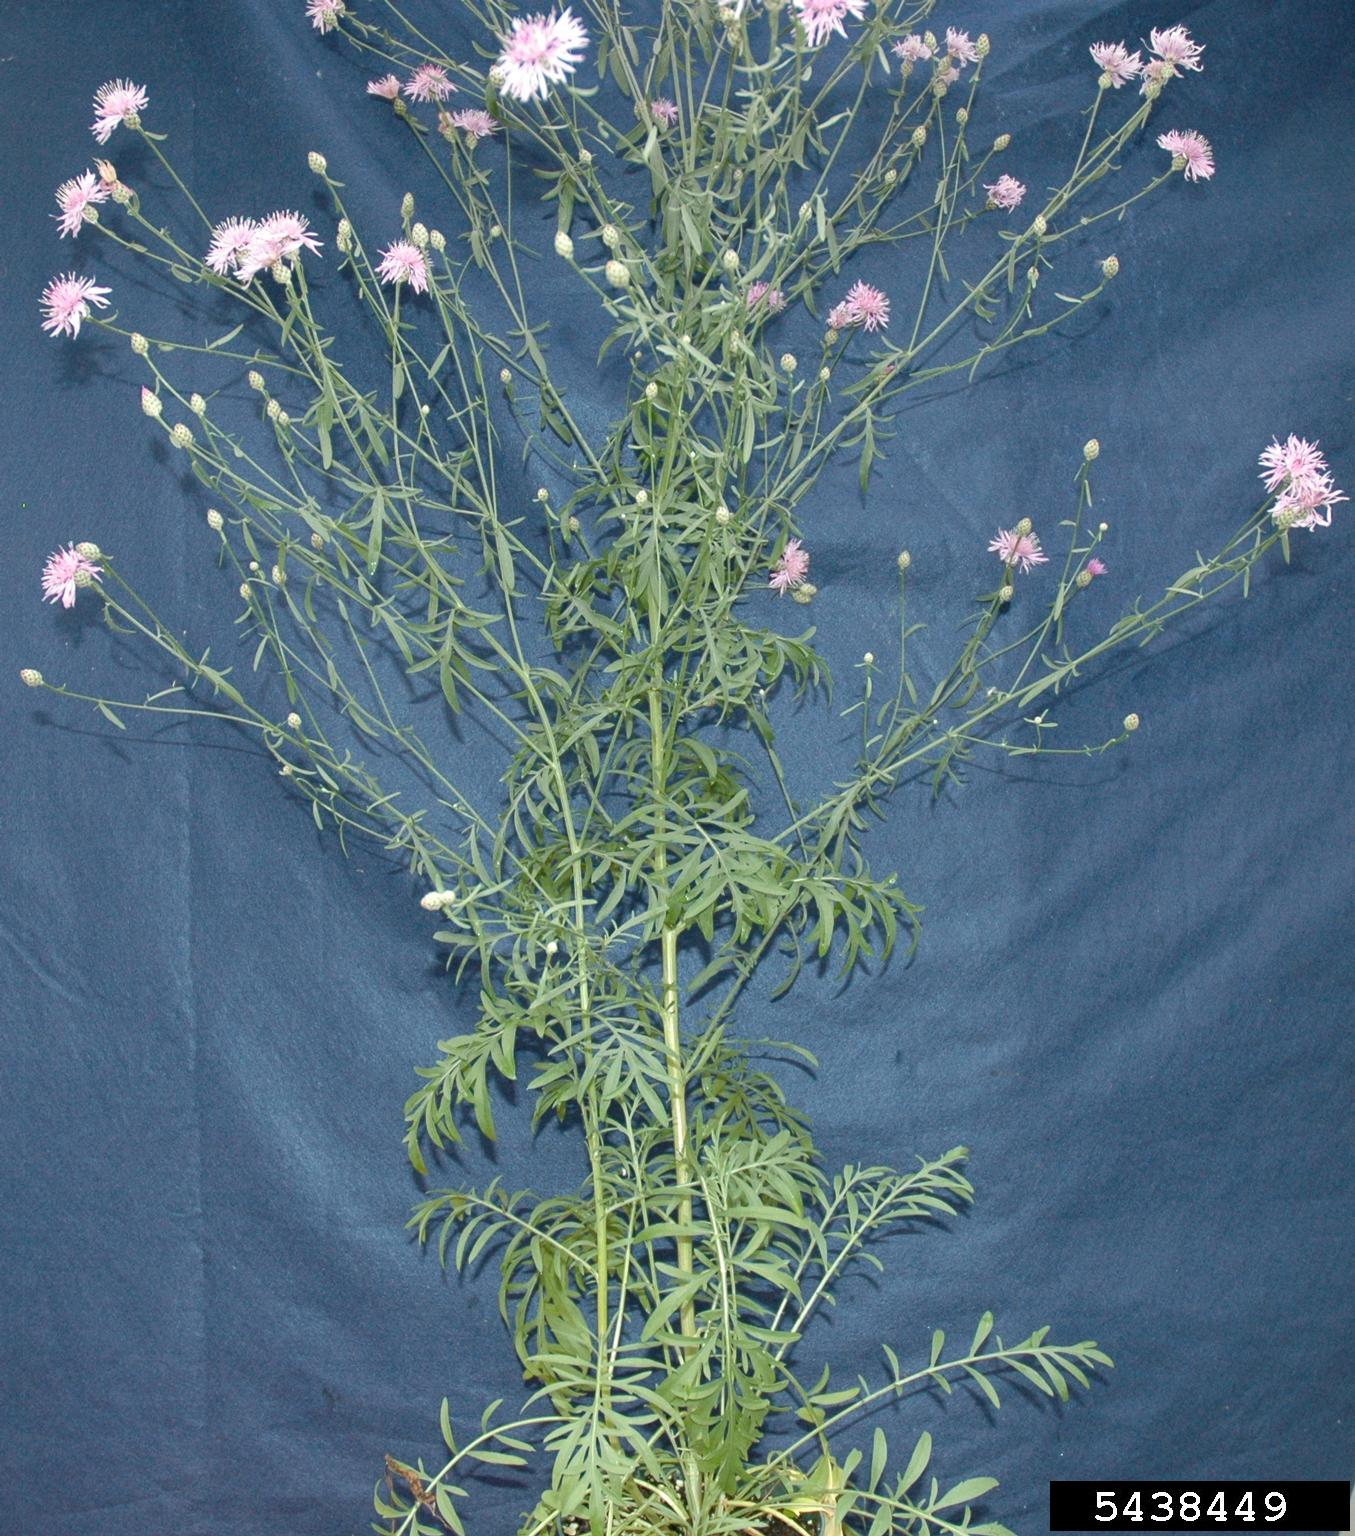 spotted knapweed whole plant